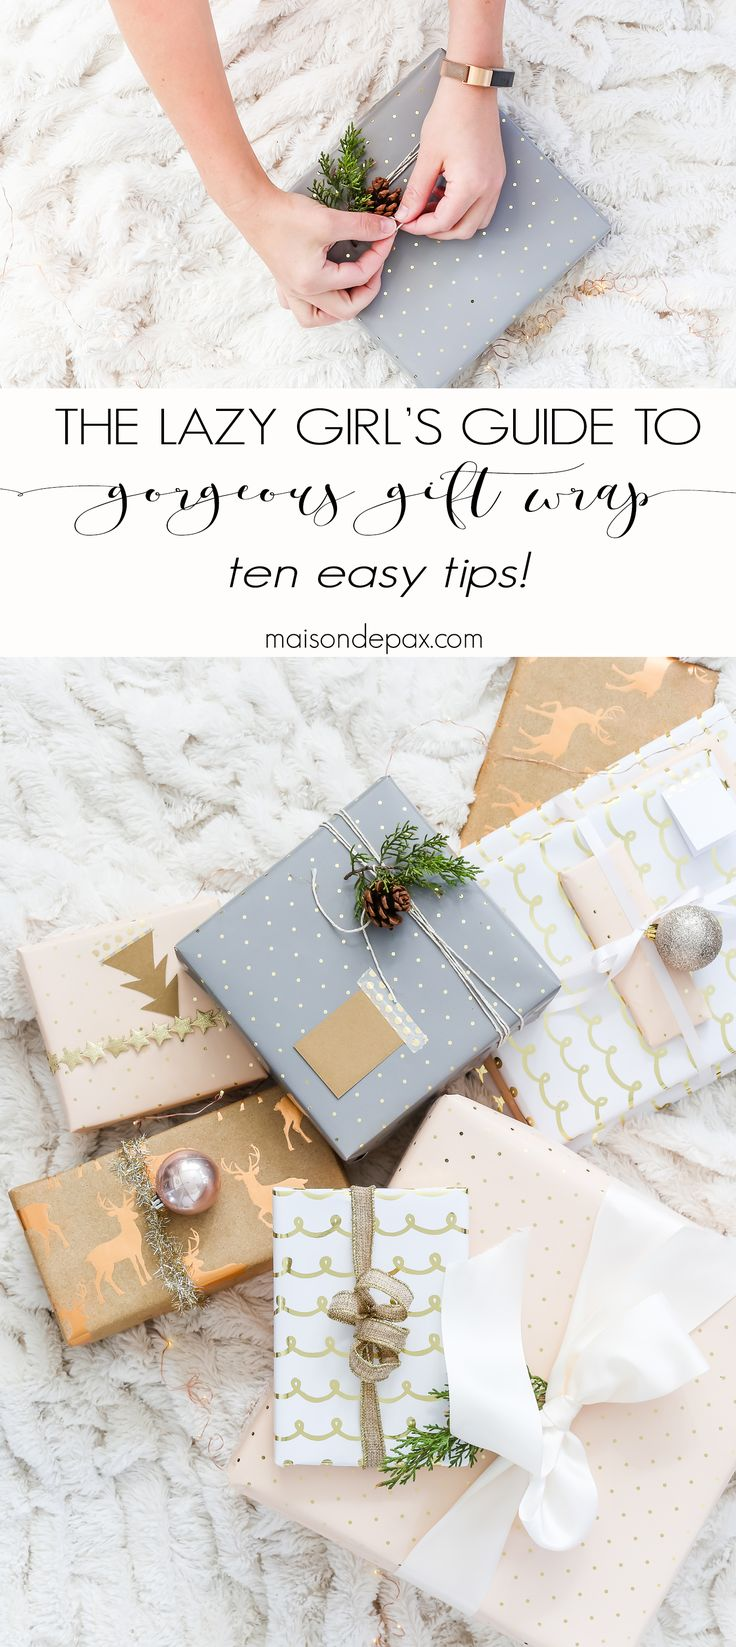 easy gift wrapping ideas: 10 tips for making gorgeous gifts fast #christmasprese...